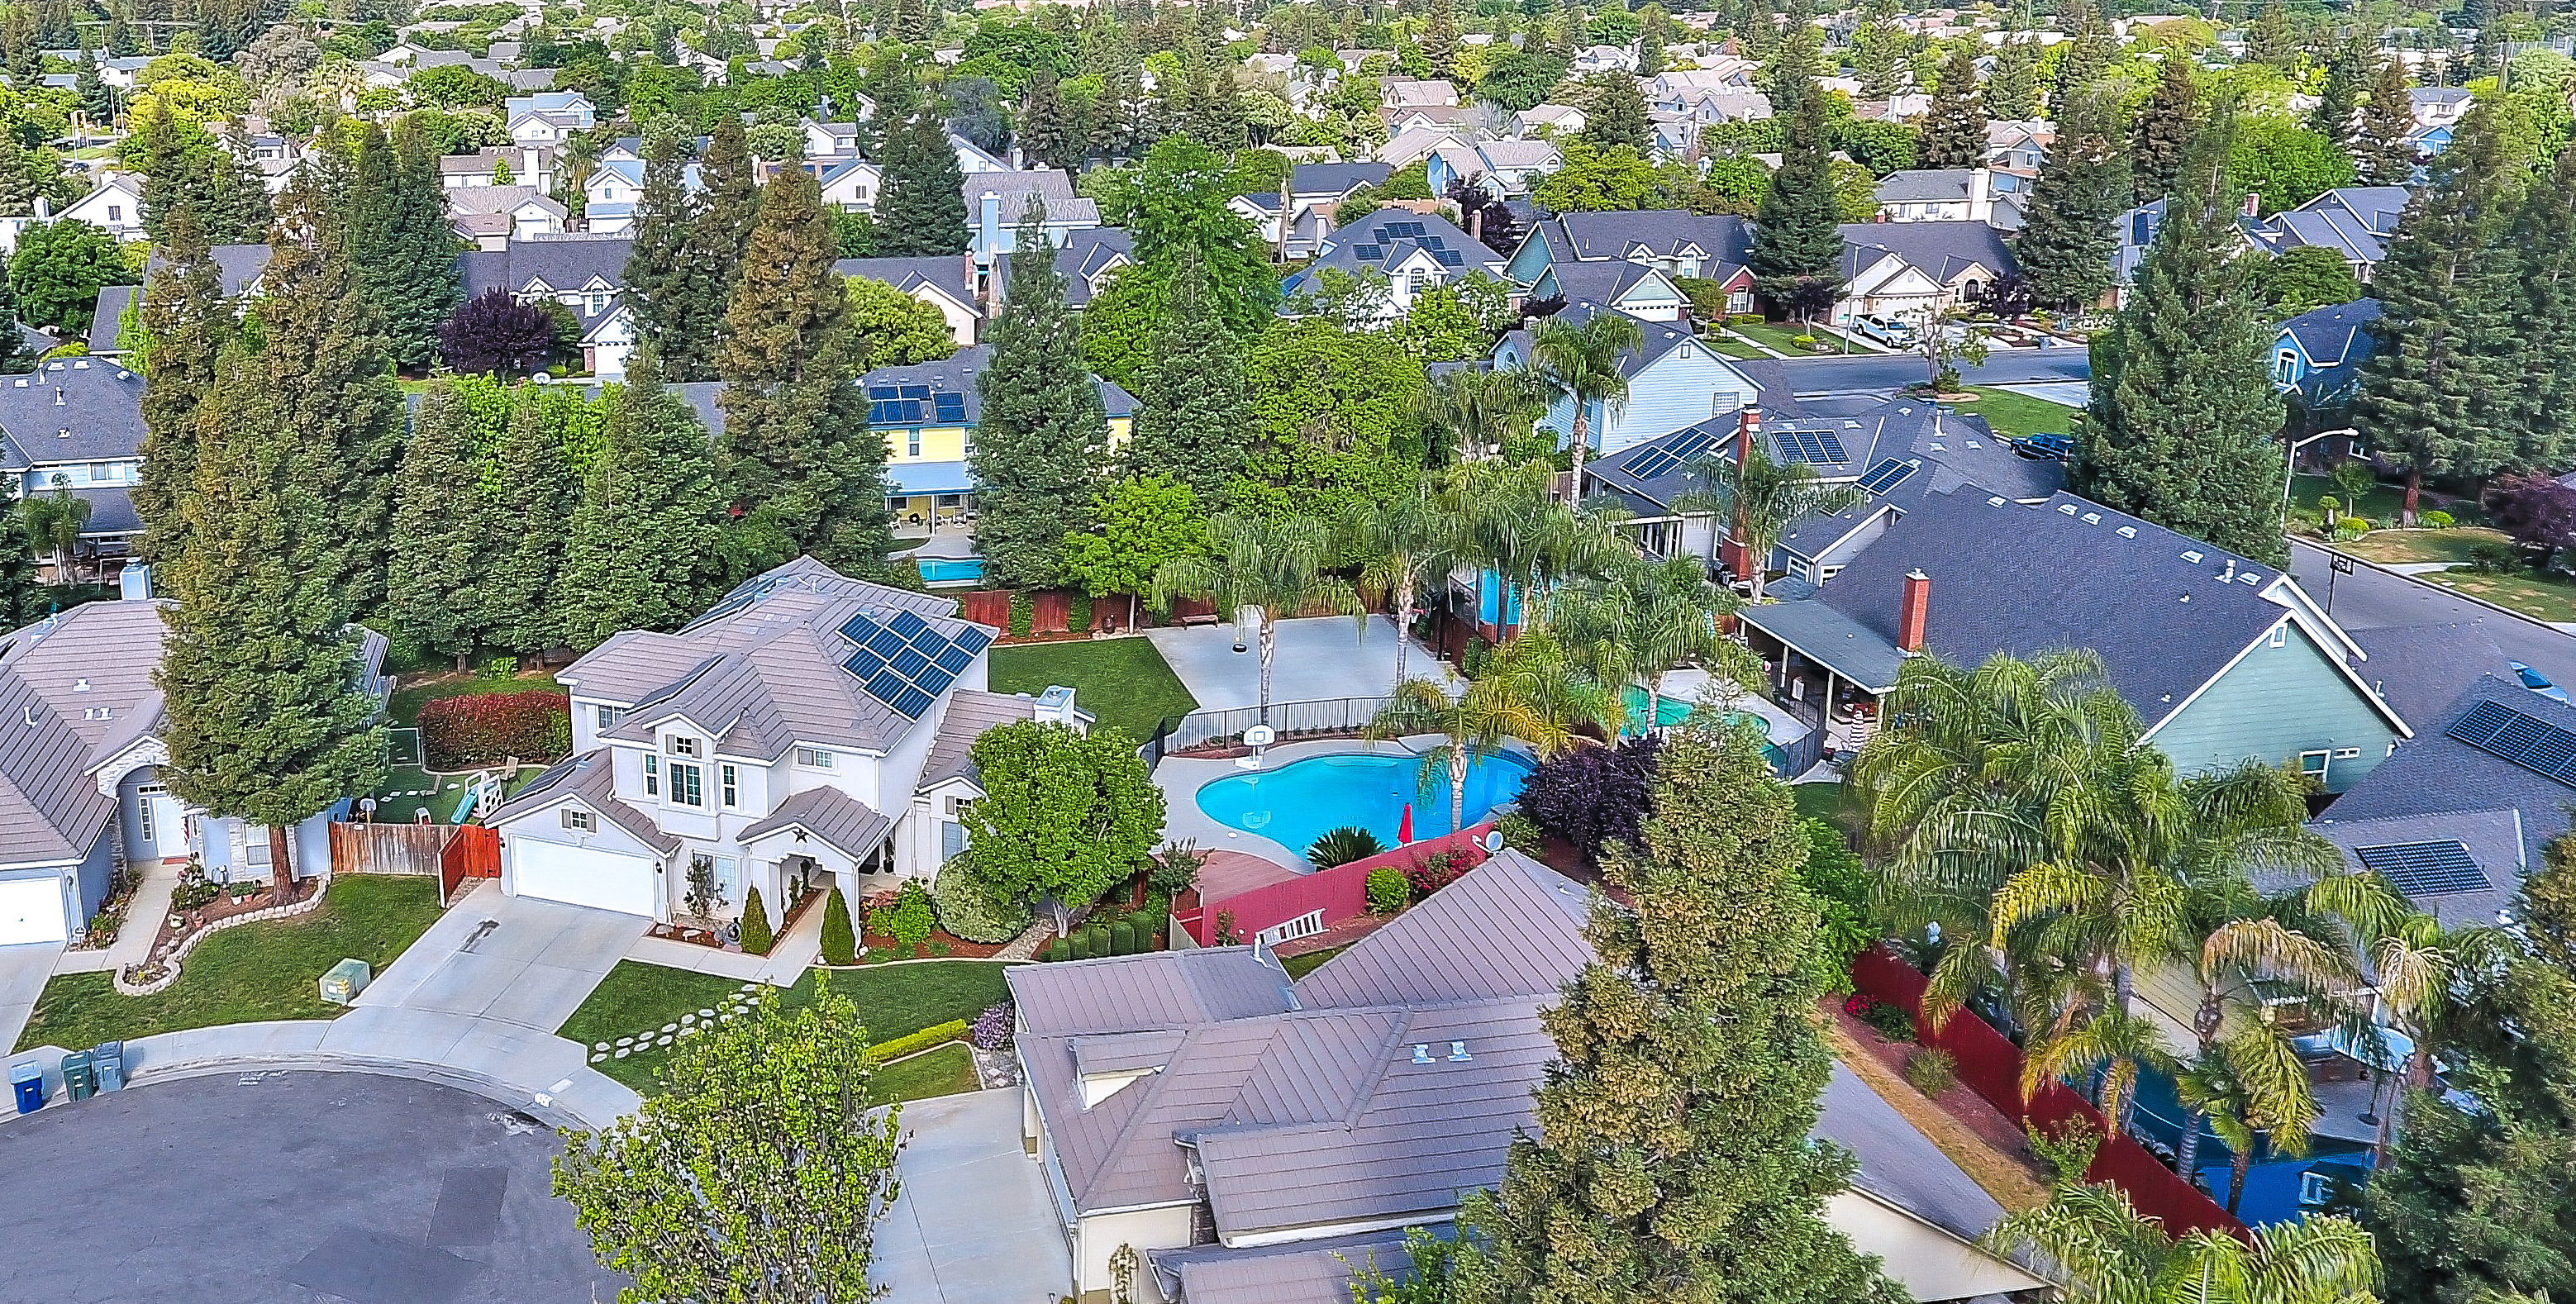 Houses with Pools in Contra Costa County